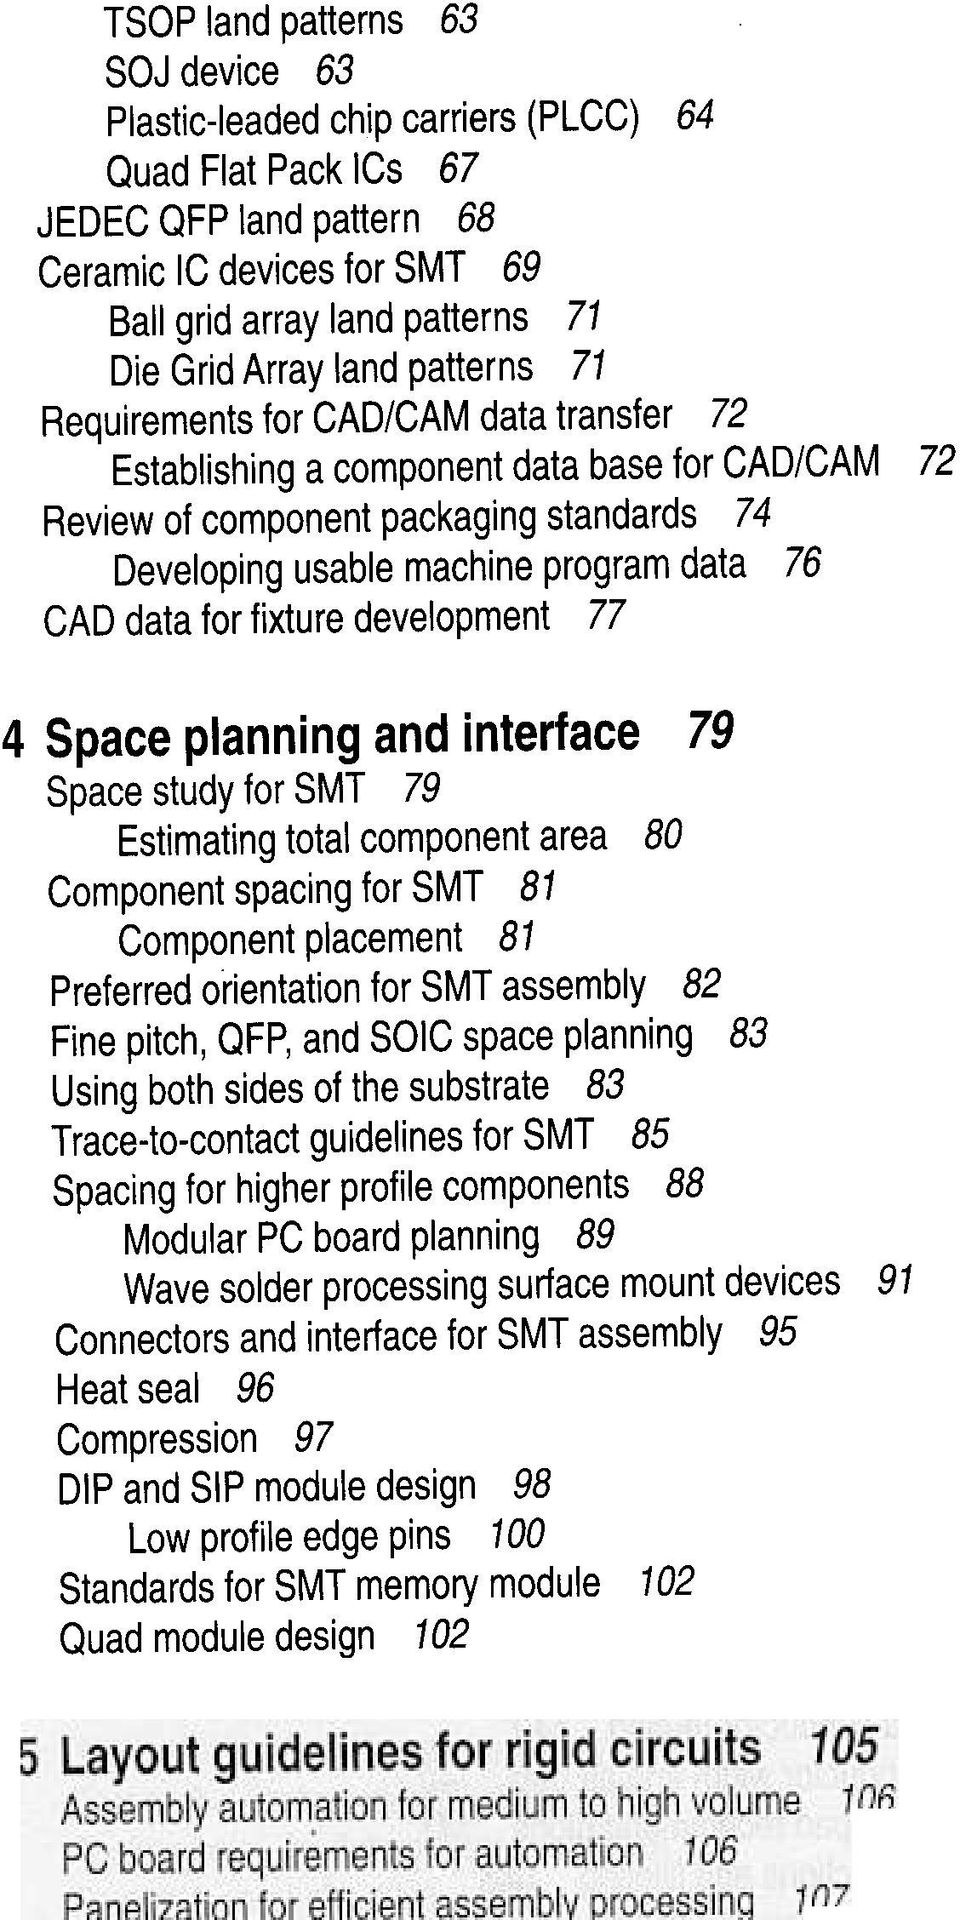 CAD data for fixture development 77 72 4 Space planning and interface 79 Space study for SMT 79 Estimating total component area 80 Component spacing for SMT 81 Component placement 81 Preferred